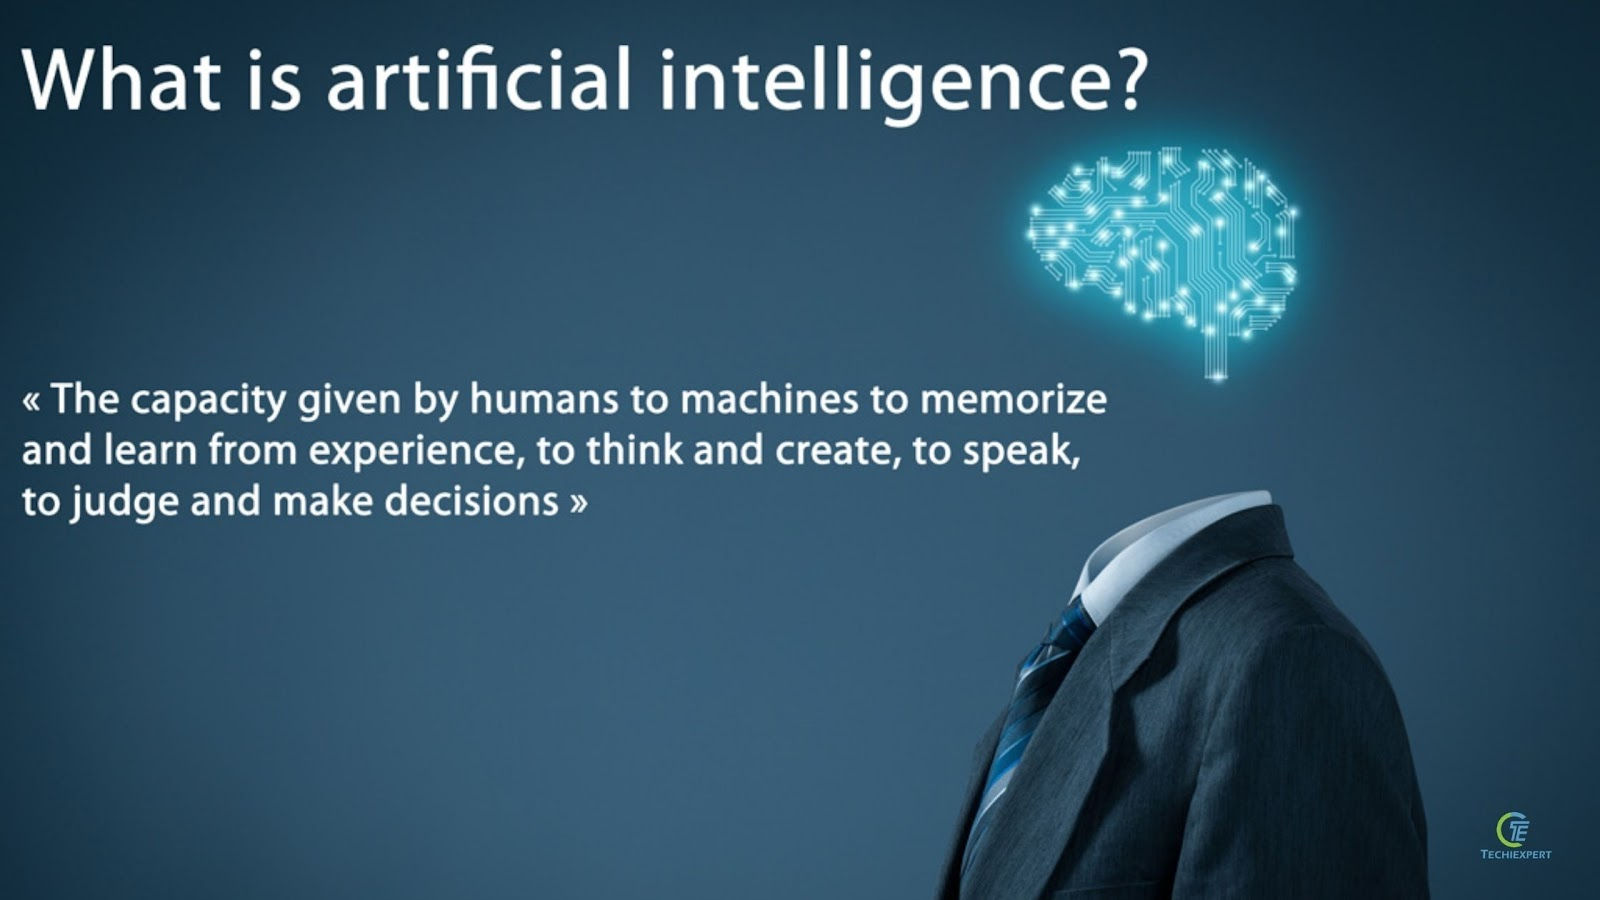 What artificial intelligence is?